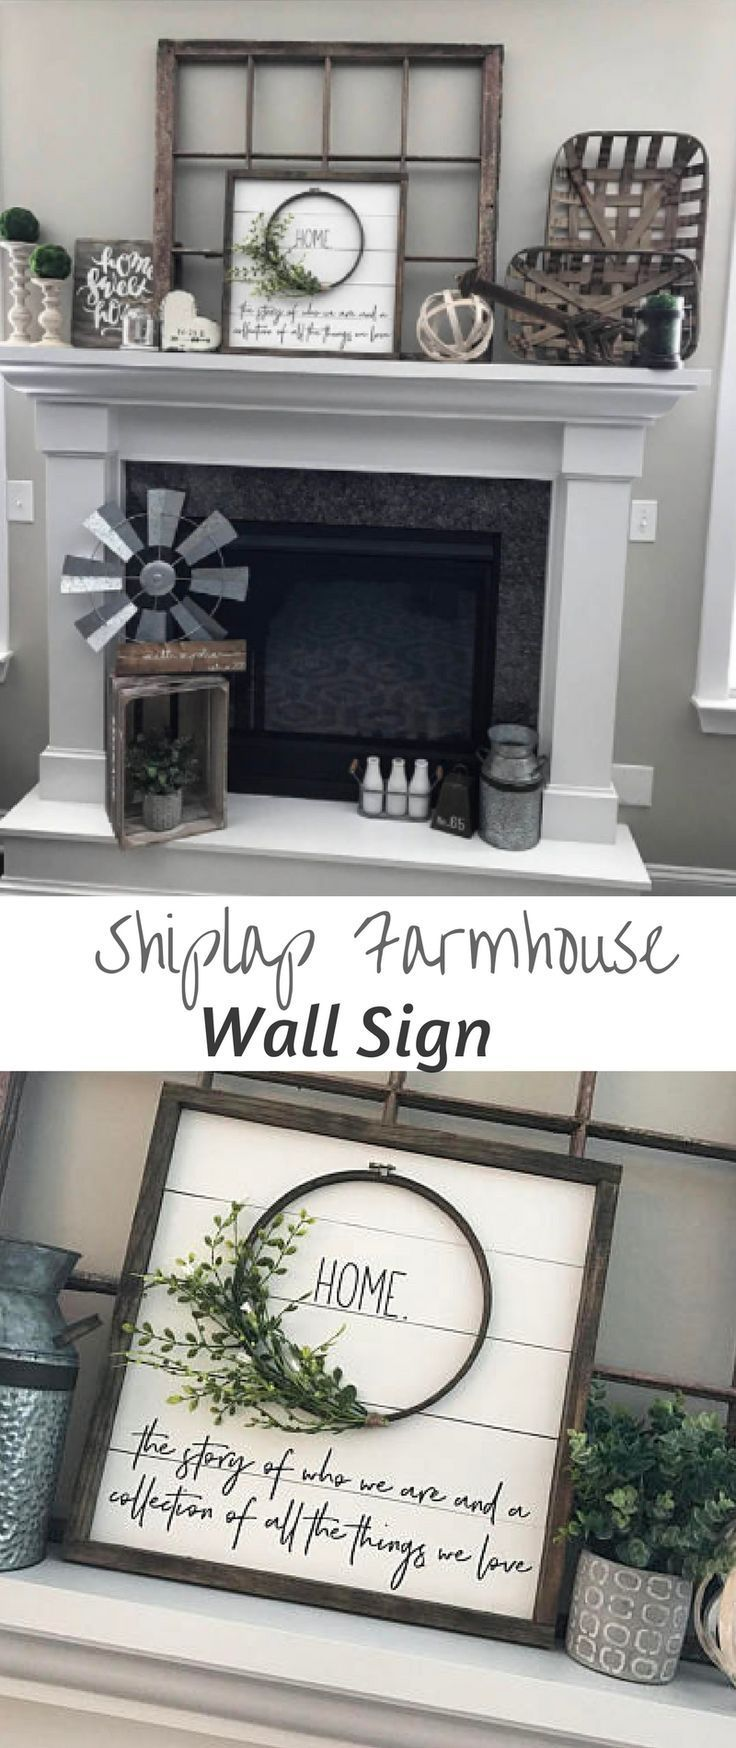 Beautiful Farmhouse Style Framed Shiplap Wreath HOME sign.This is a great added touch for any farmhouse, rustic style home decorating. #farmhouse #dec…